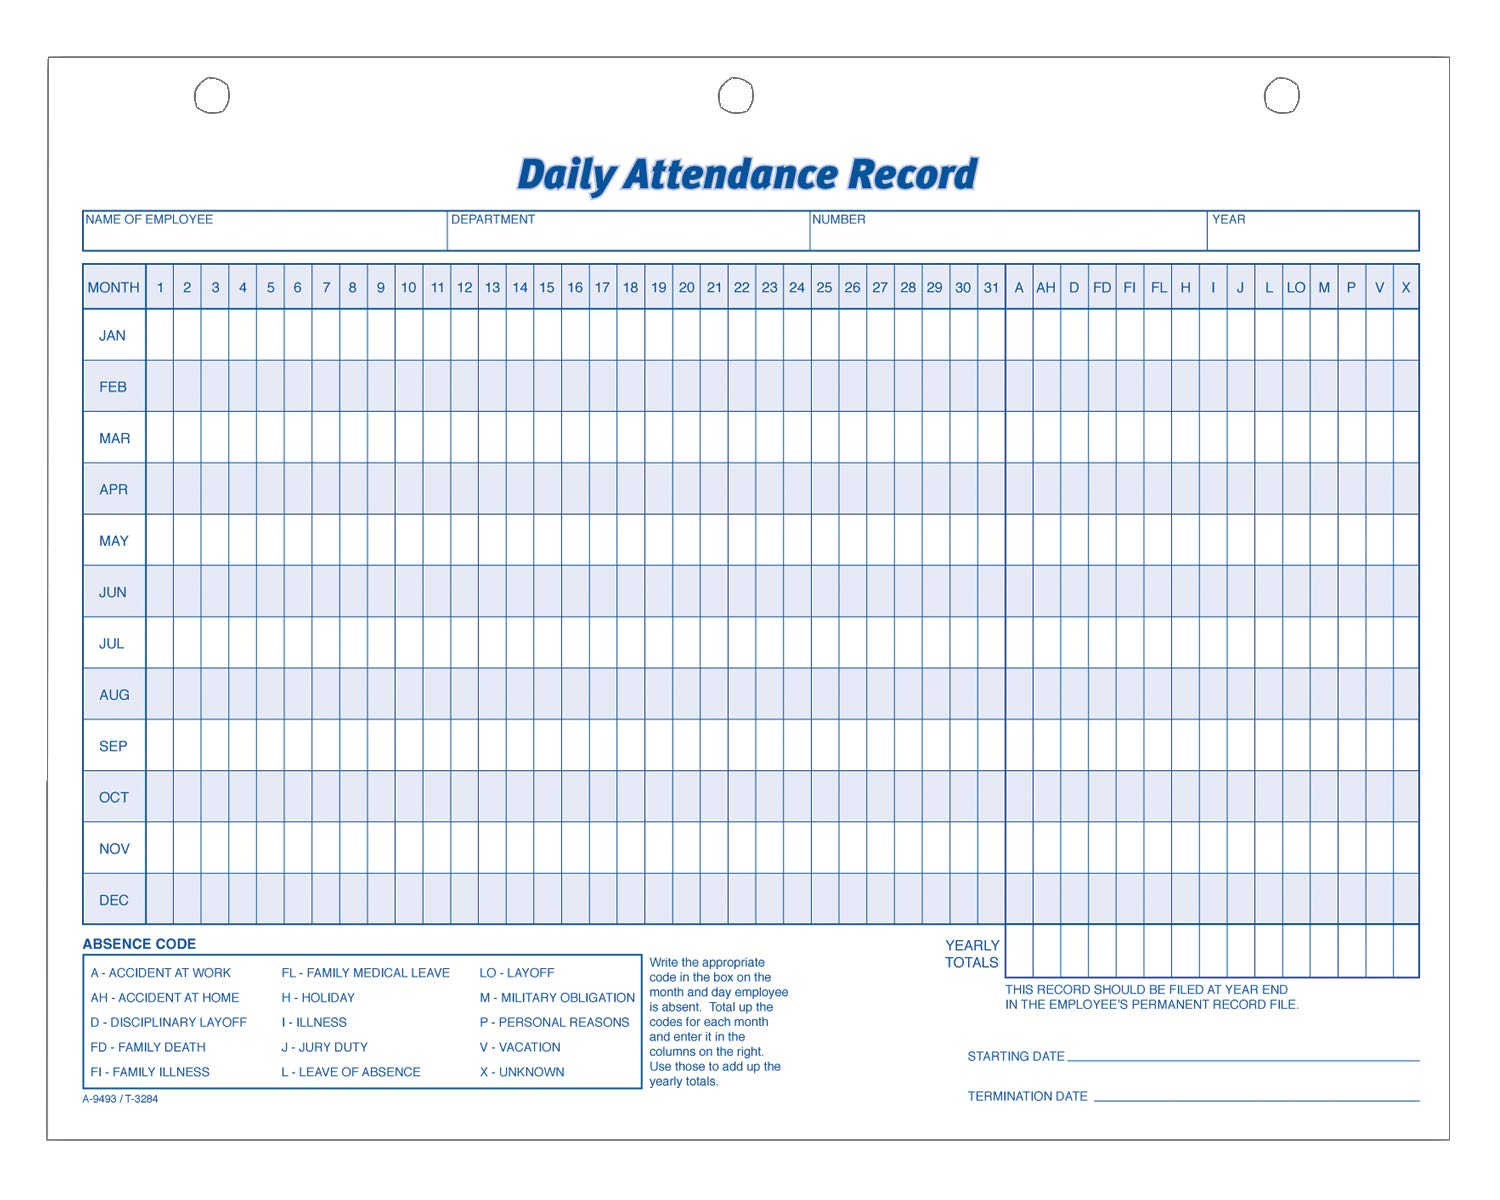 Adams Daily Attendance Record, 8.5 x 11 Inches, 3-Hole Punched, 50-Pack, White (9493) by Adams